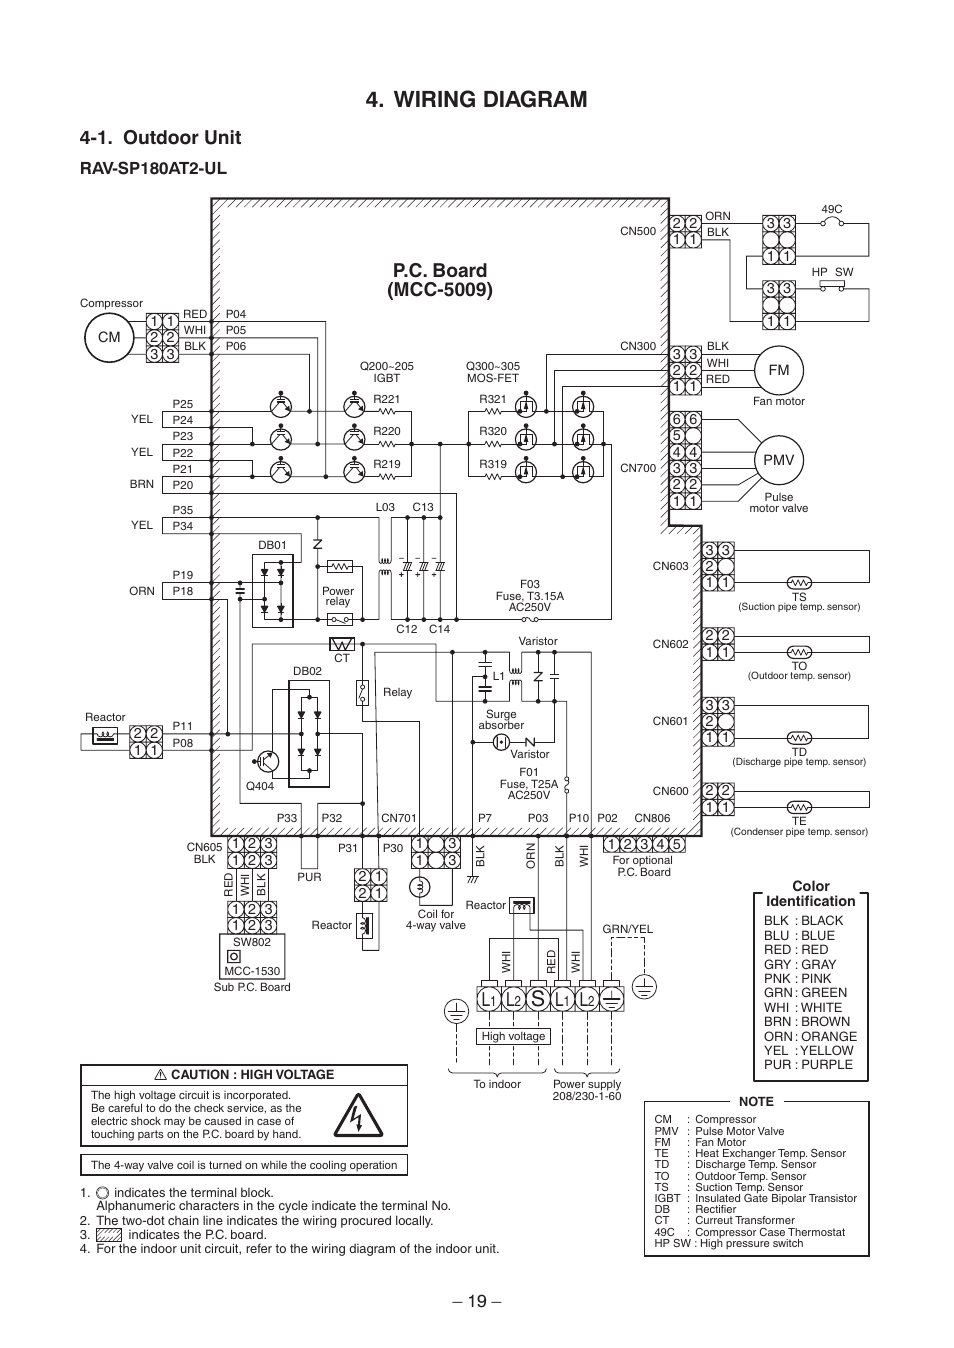 medium resolution of toshiba wiring diagram wiring diagram datatoshiba connection diagrams wiring diagram tutorial toshiba refrigerator wiring diagram toshiba